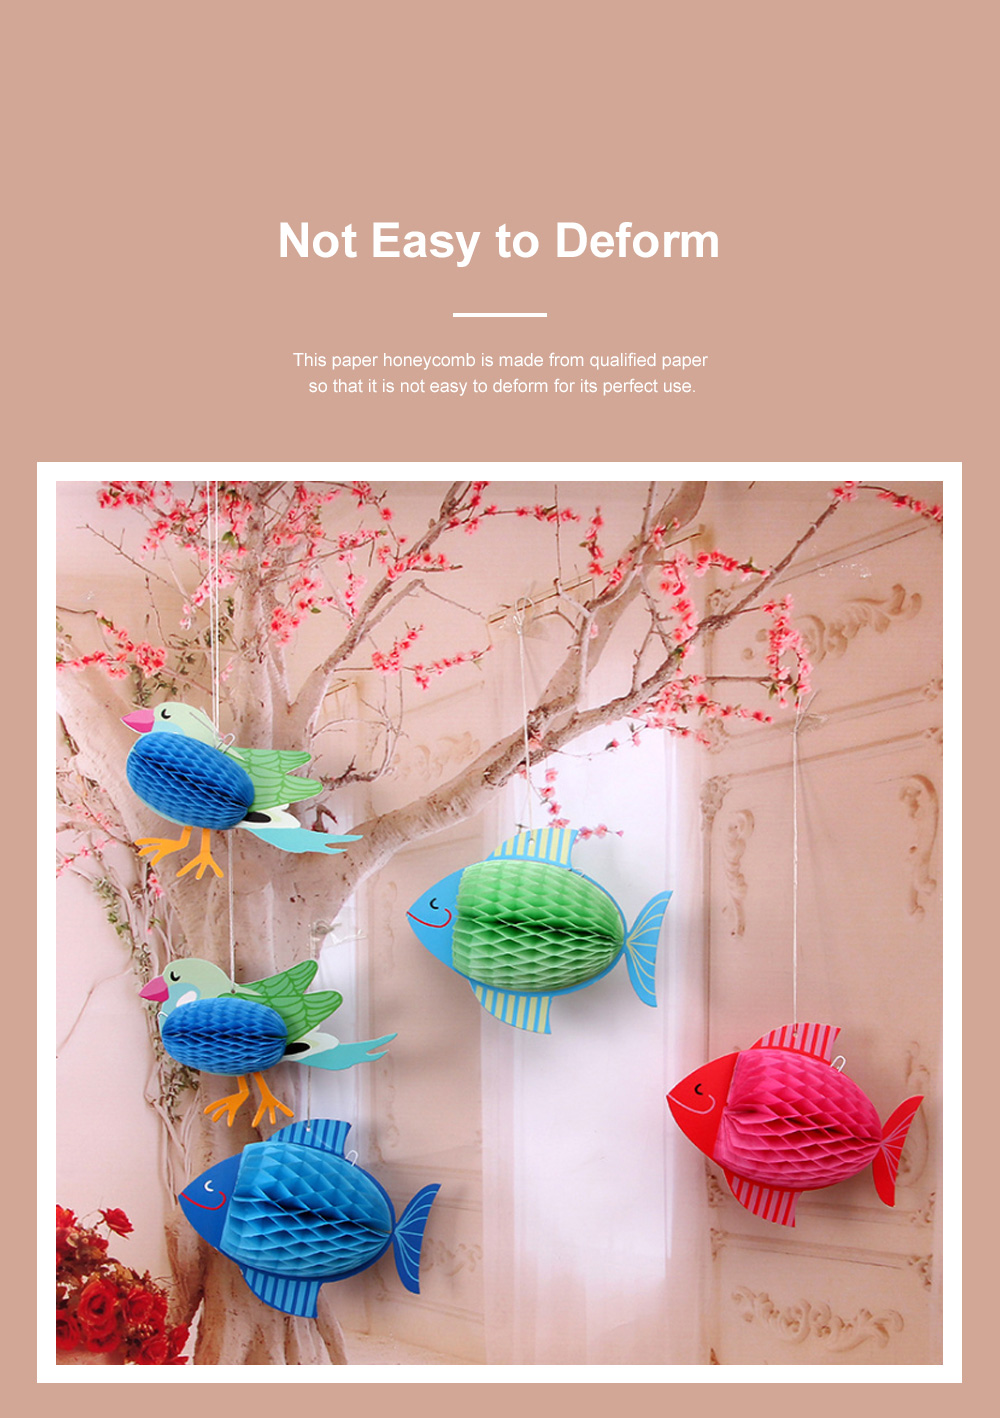 6pcs Festive Decoration Bird Fish Paper Honeycomb Party Use Three-dimensional Card Fish Paper Honeycomb Paper Flowers Ball 2